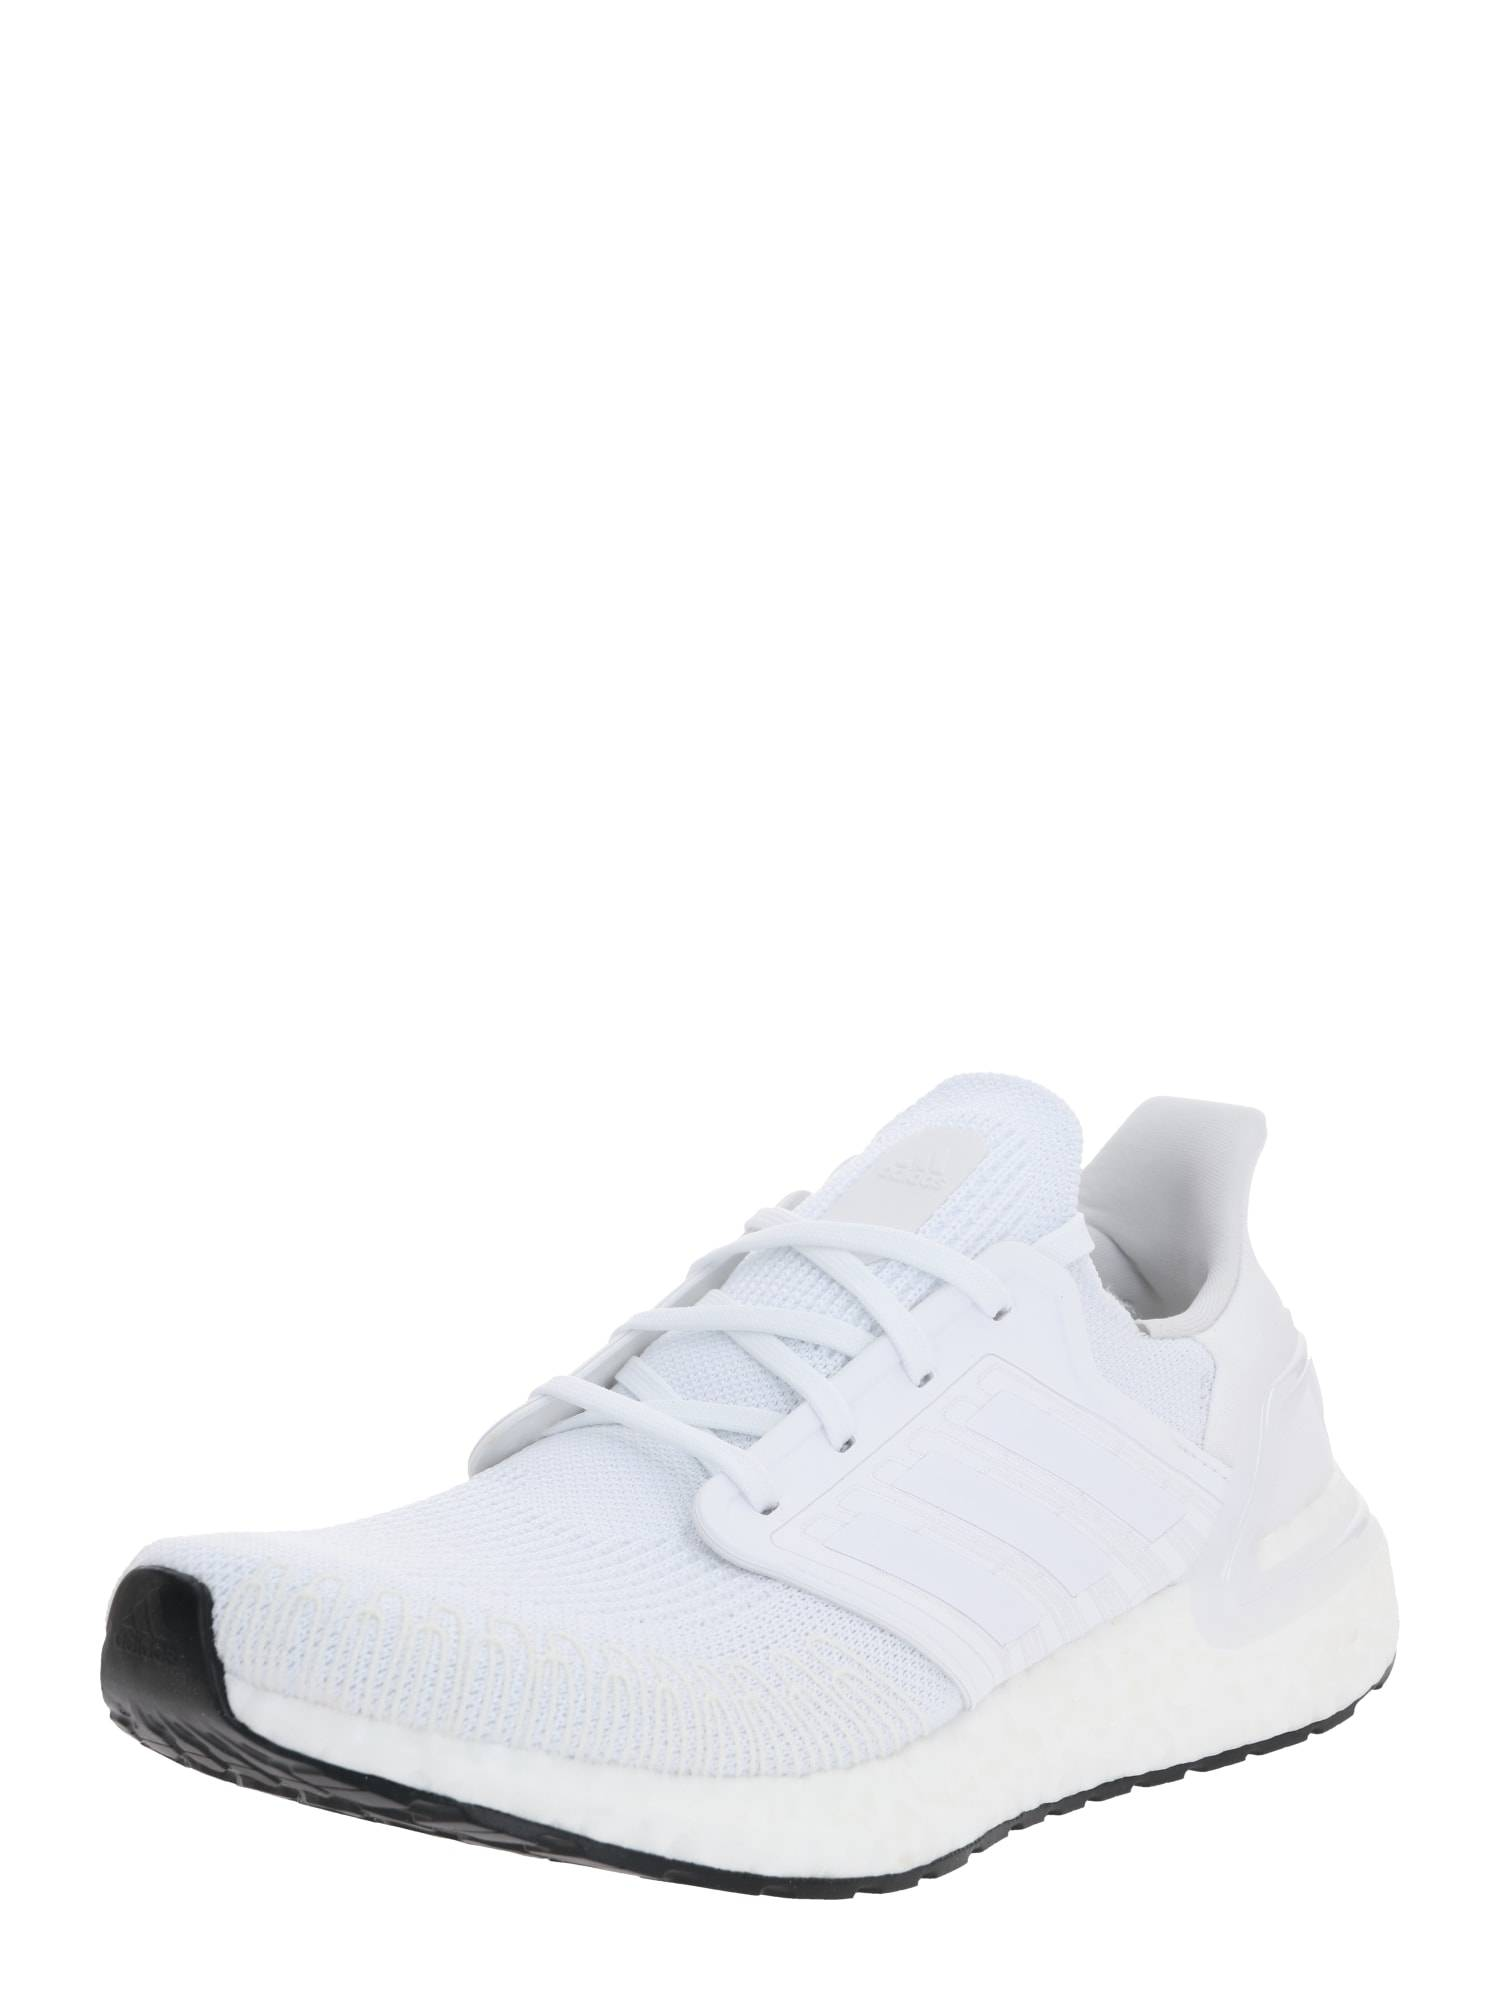 ADIDAS PERFORMANCE Chaussure de course 'Ultraboost 20'  - Blanc - Taille: 43-43.5 - male